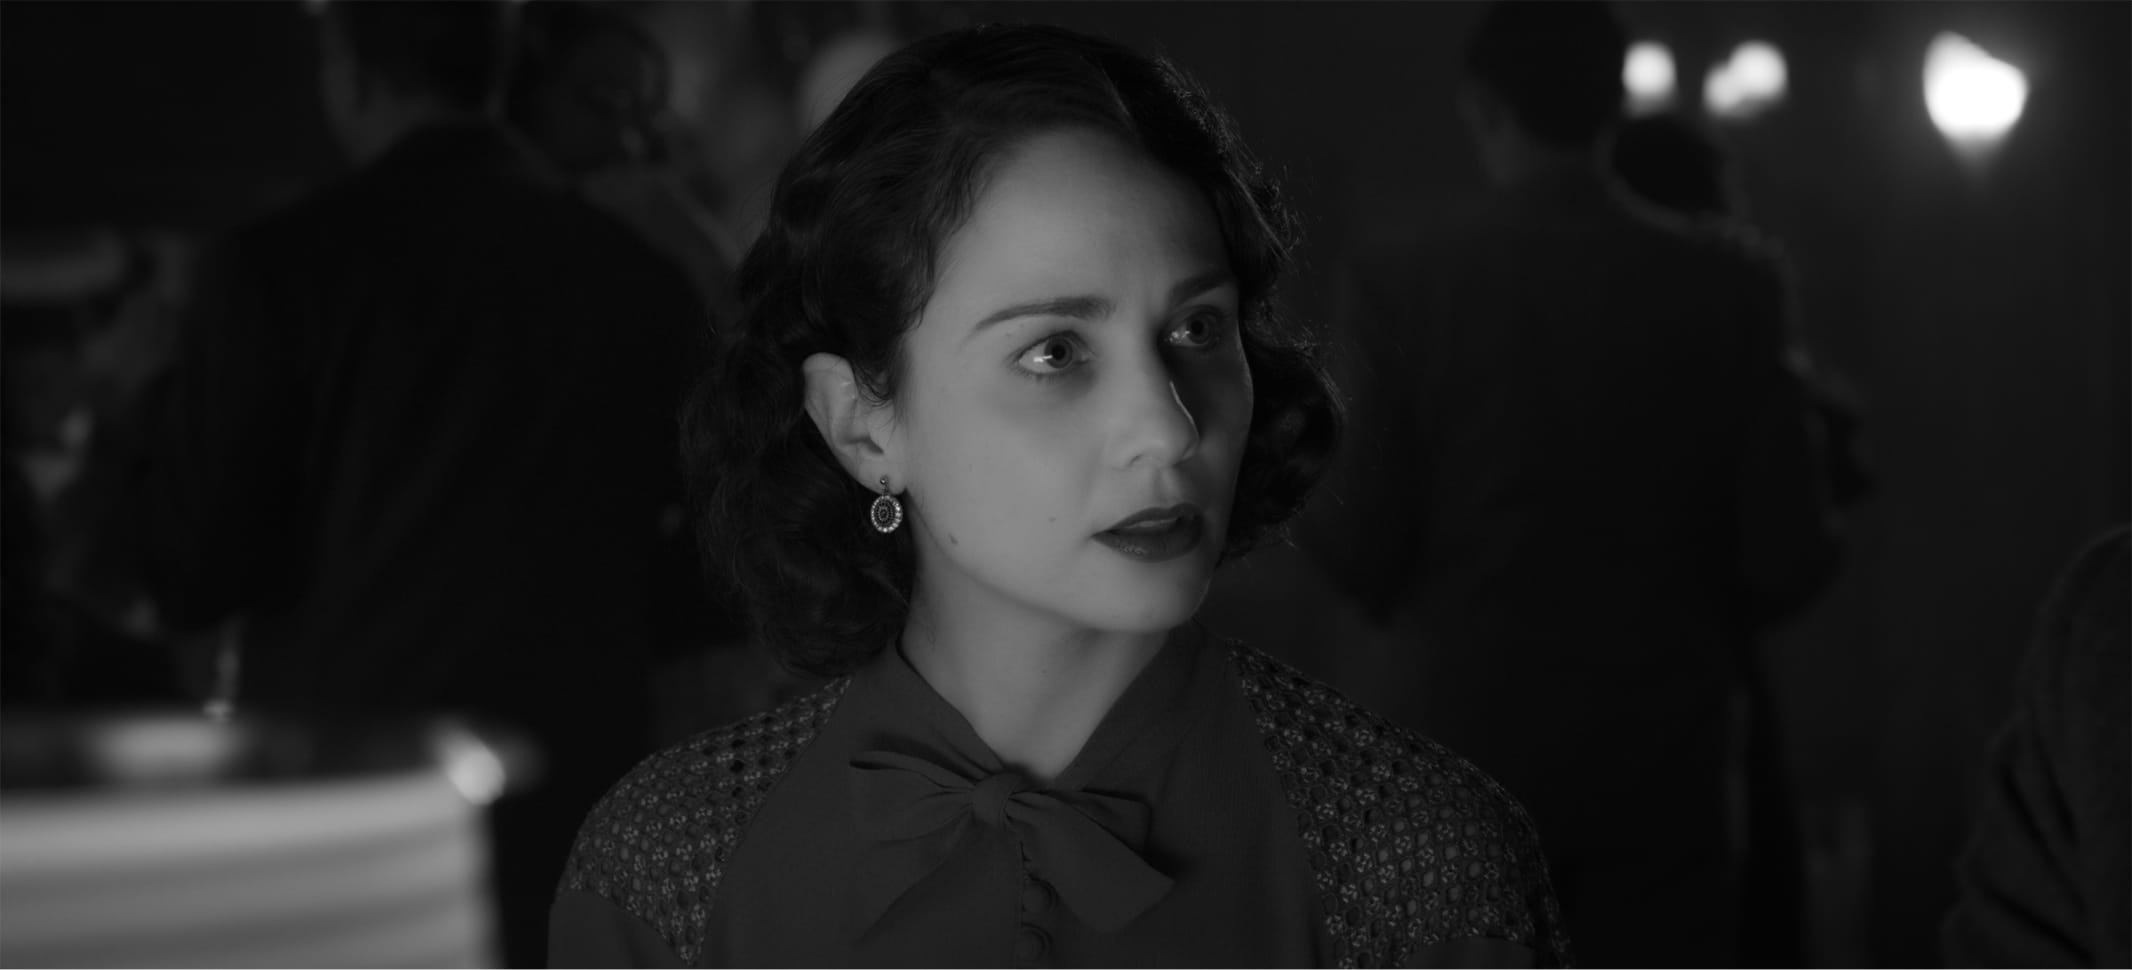 In a shot from the film, we see how the scene above translates to a black-and-white experience. Middleton's dark hair, red dress, and red lipstick appear in rich shades of gray and black.